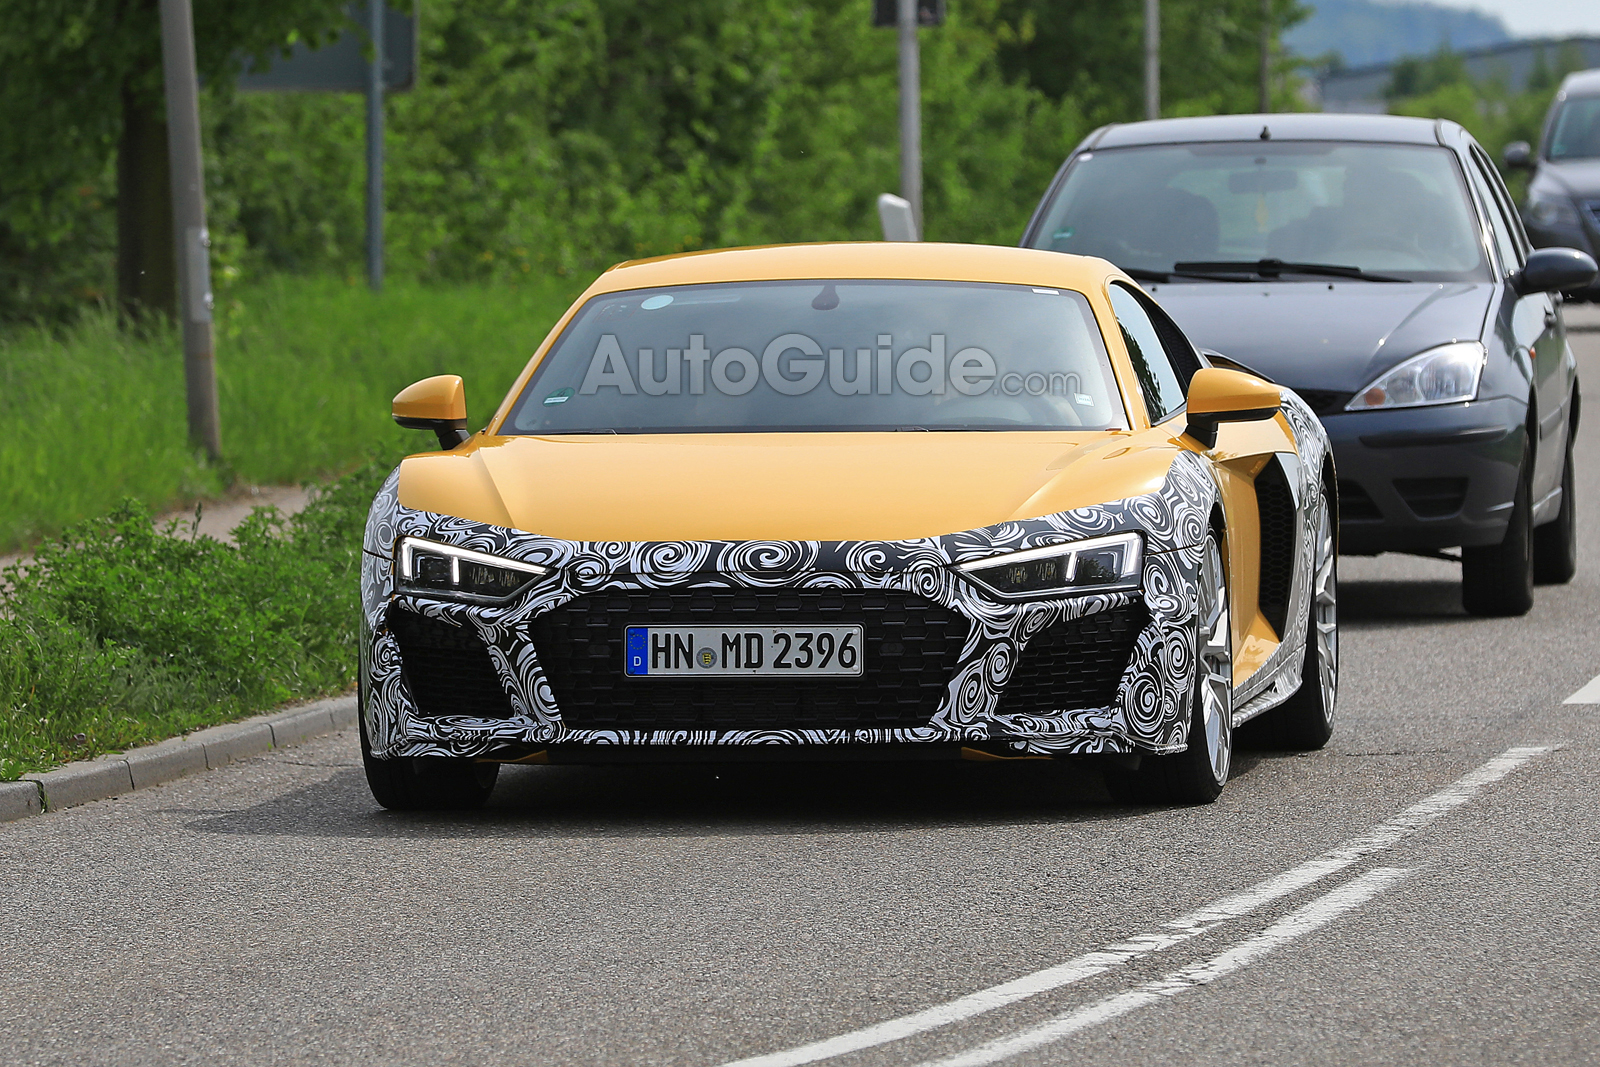 2020 audi r8 spied looking yellow and camouflaged news. Black Bedroom Furniture Sets. Home Design Ideas